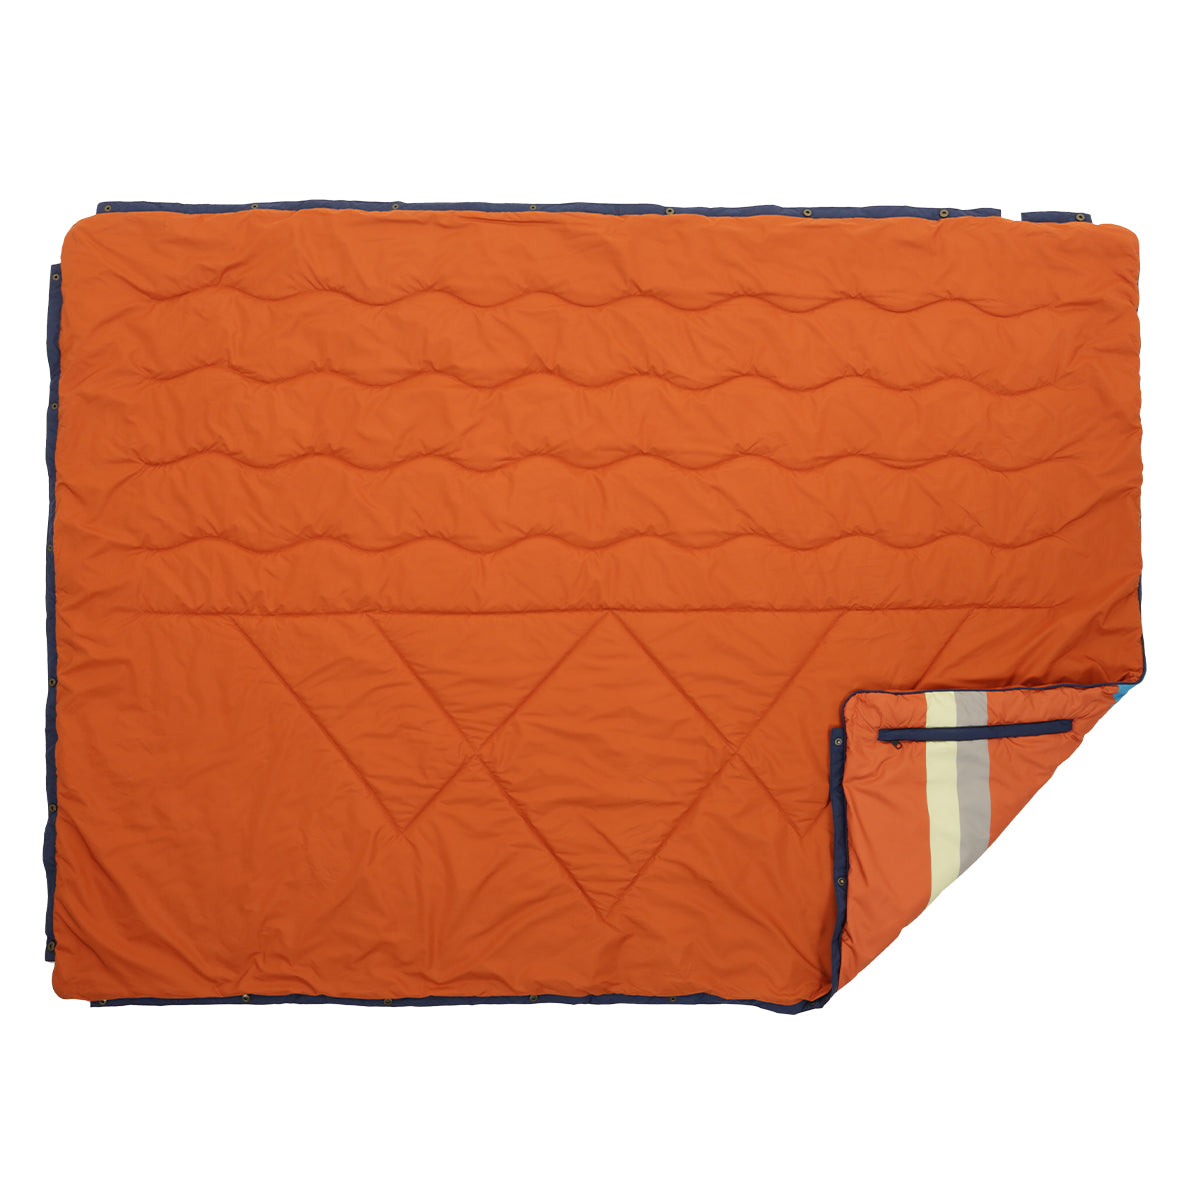 Nomadics 1 Person Insulated Blanket - Rust image 2